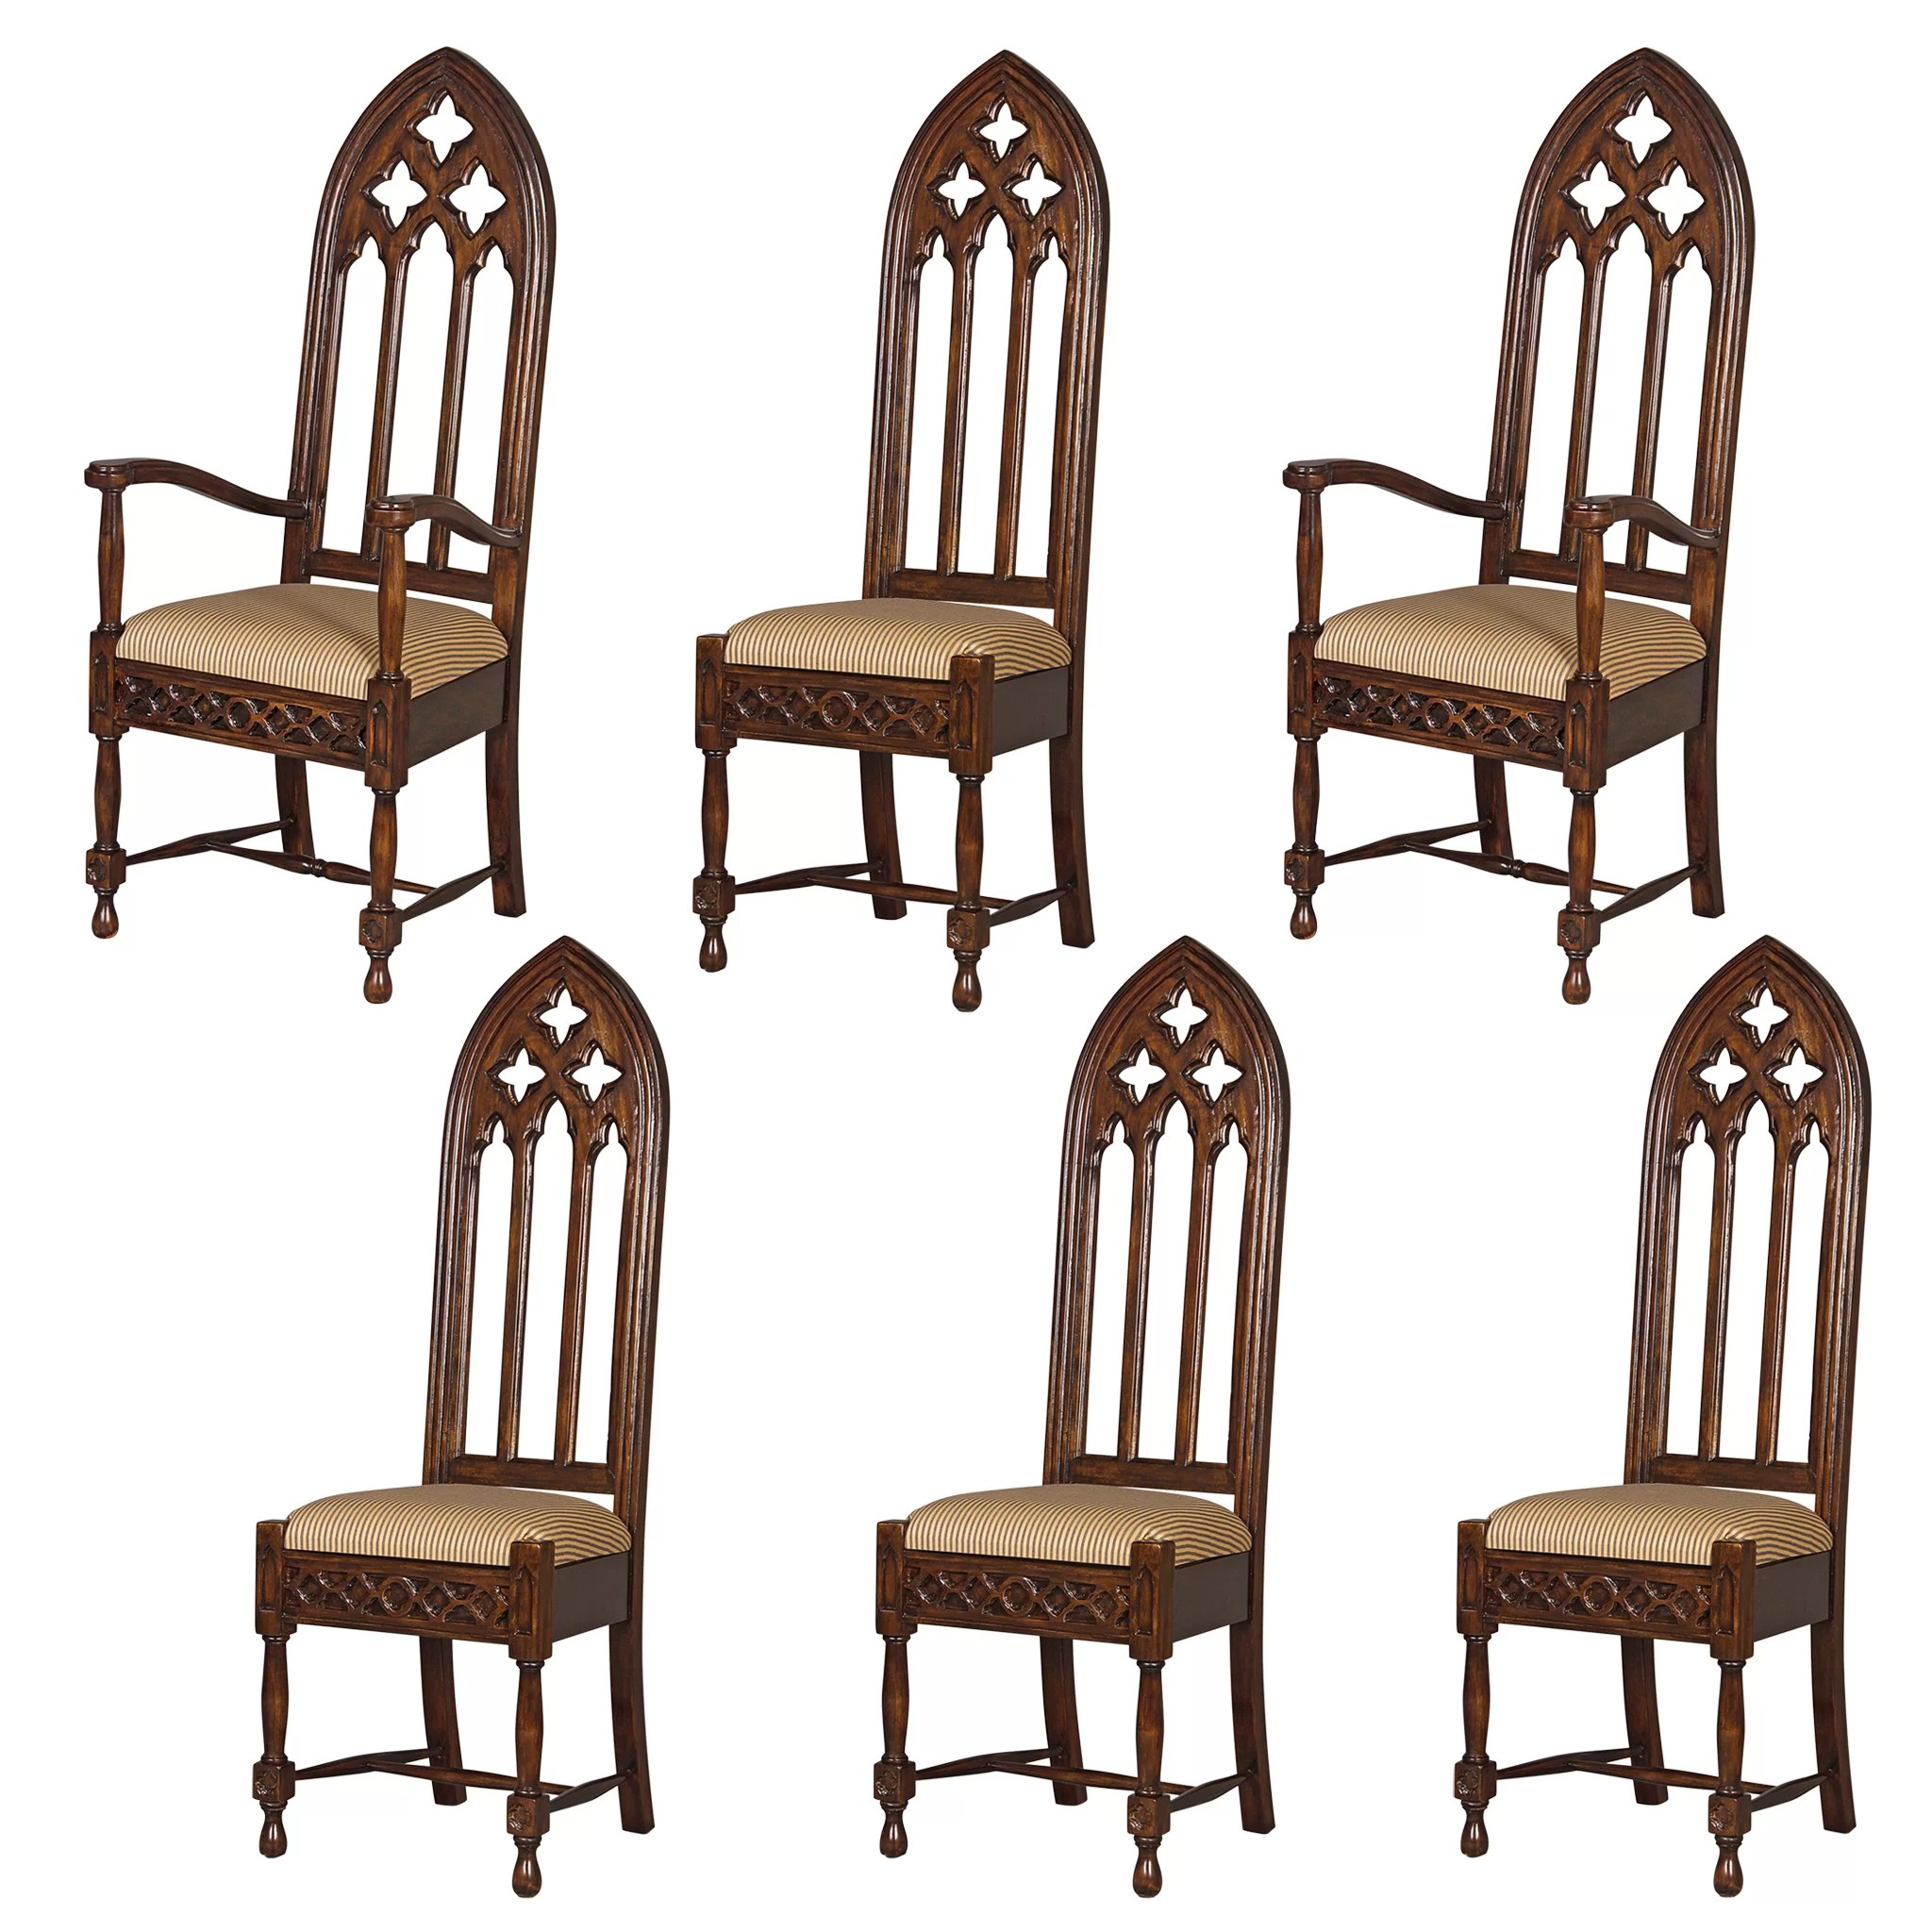 cathedral chairs cheap recliner chair design toscano 6 piece viollet le duc gothic